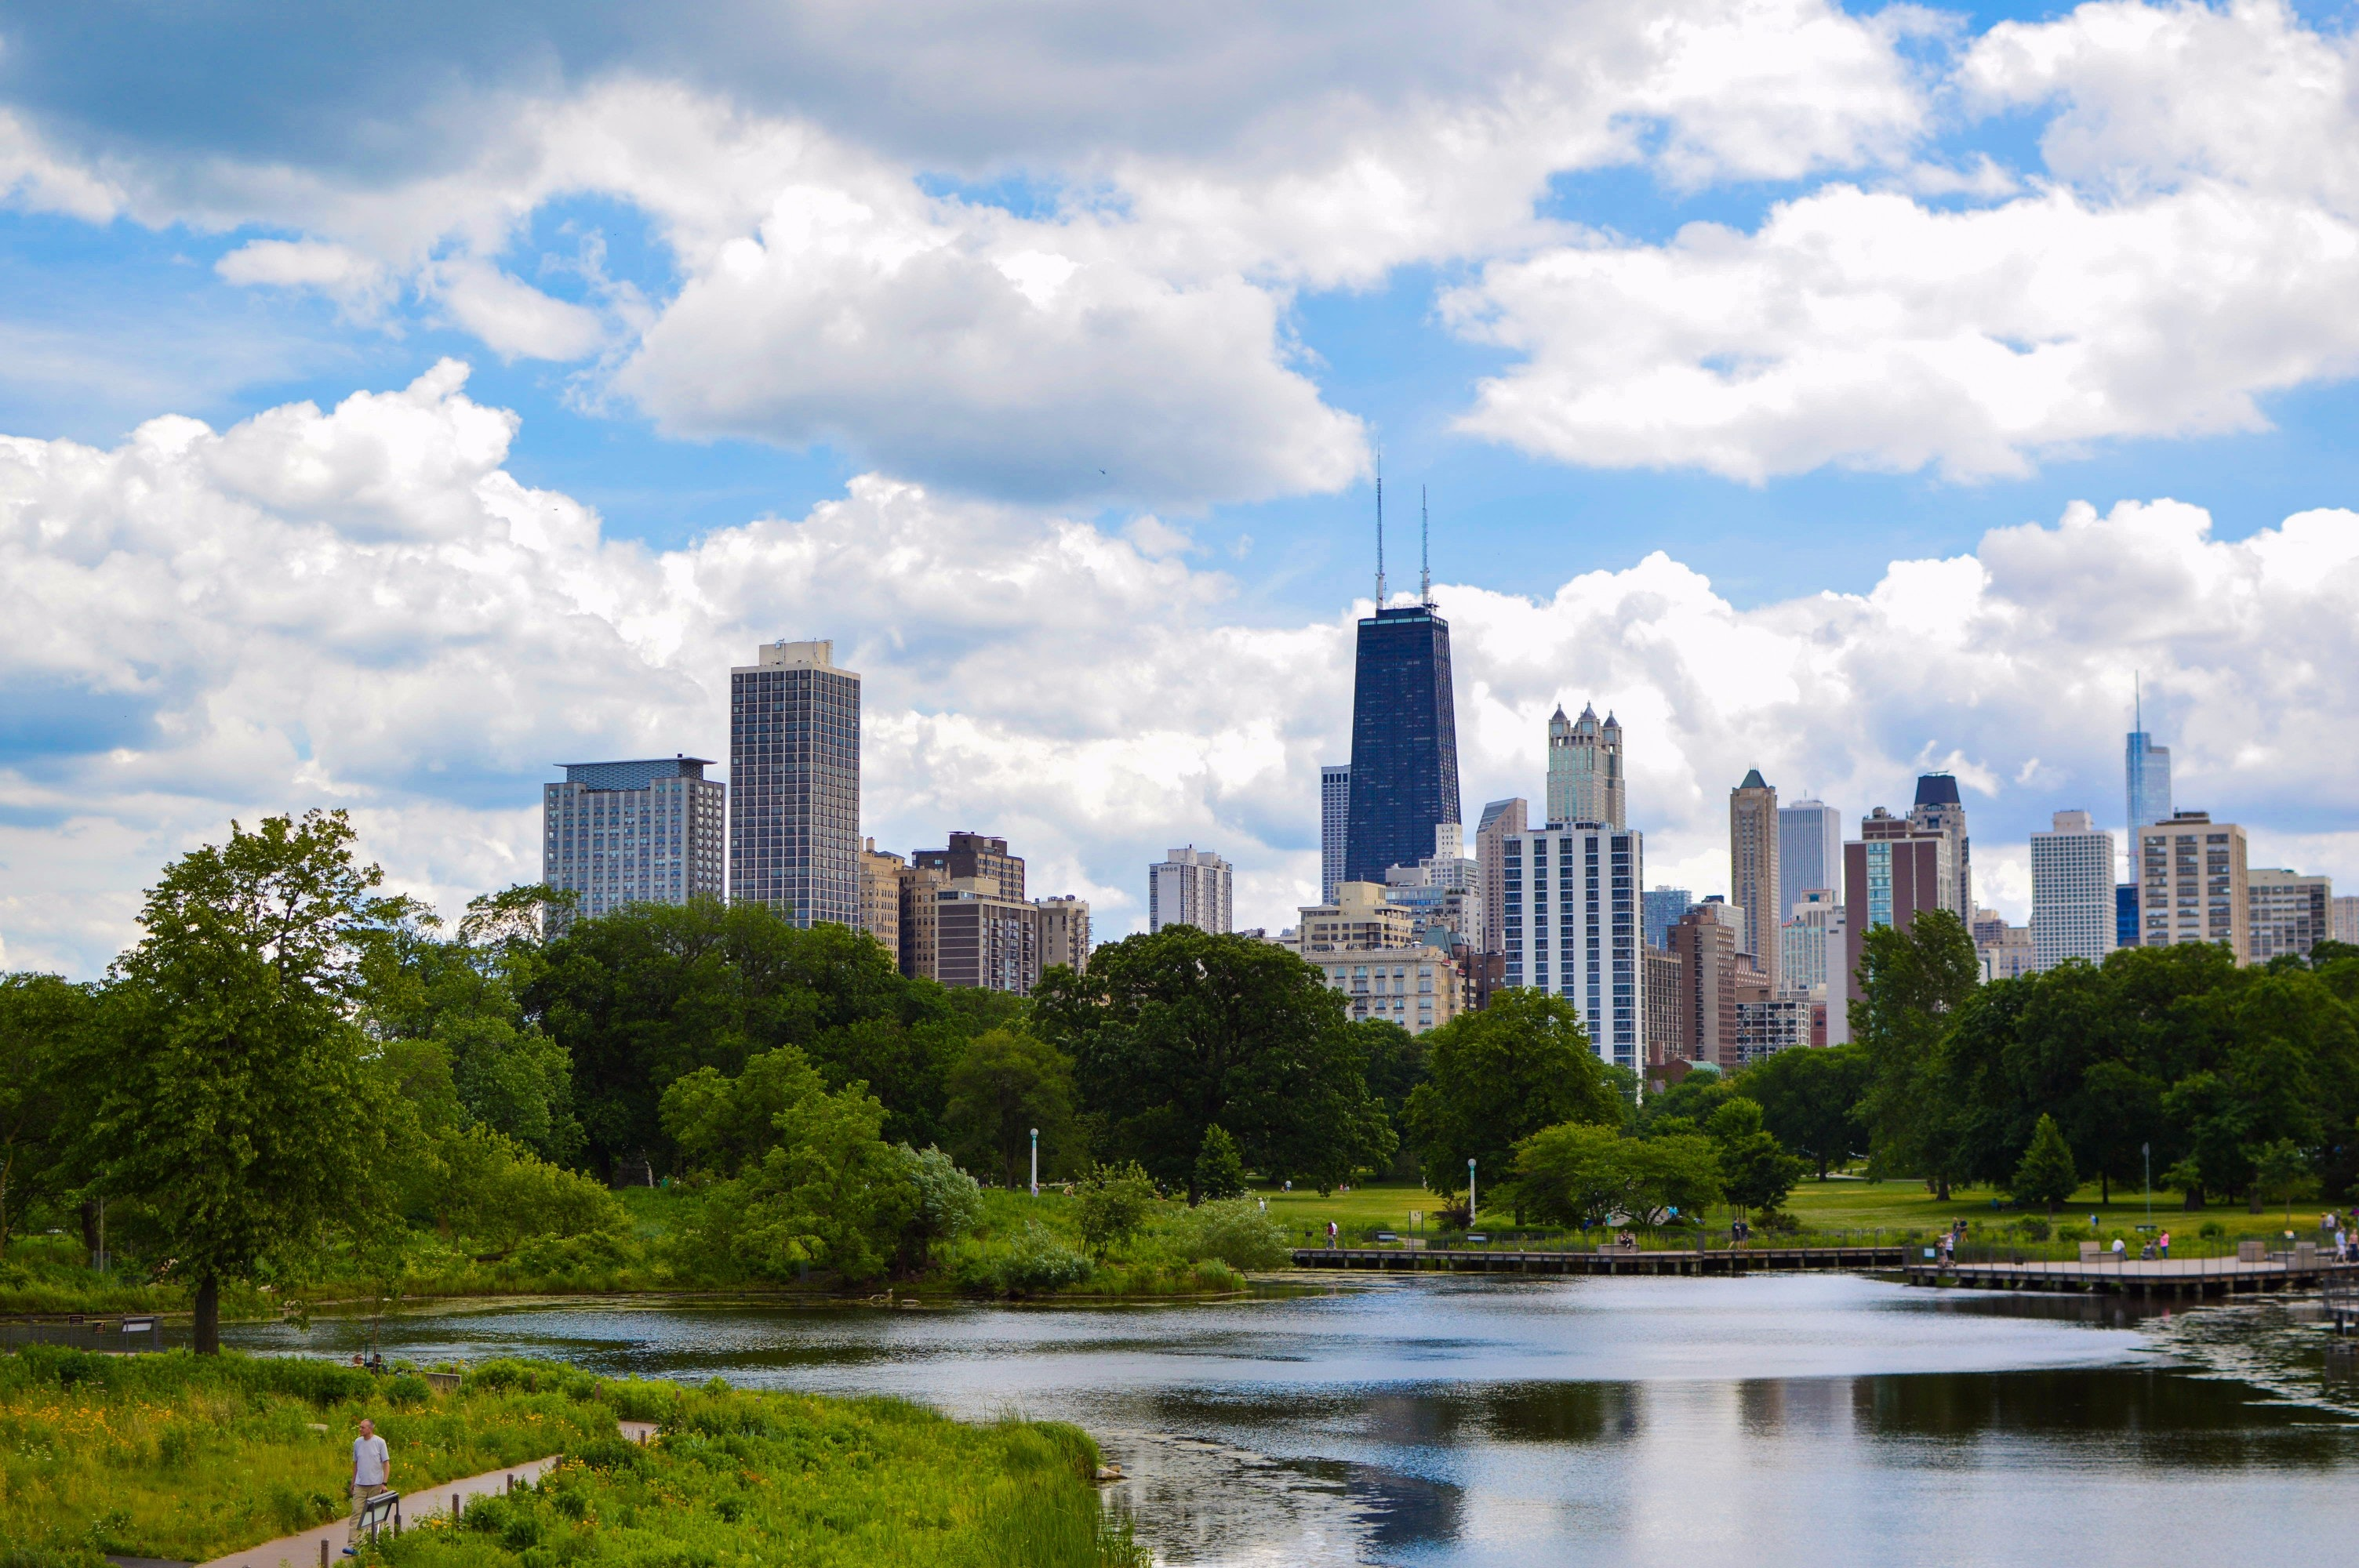 Body of Water, Forest, Then City Buildings, Architecture, Offices, Urban, Trees, HQ Photo